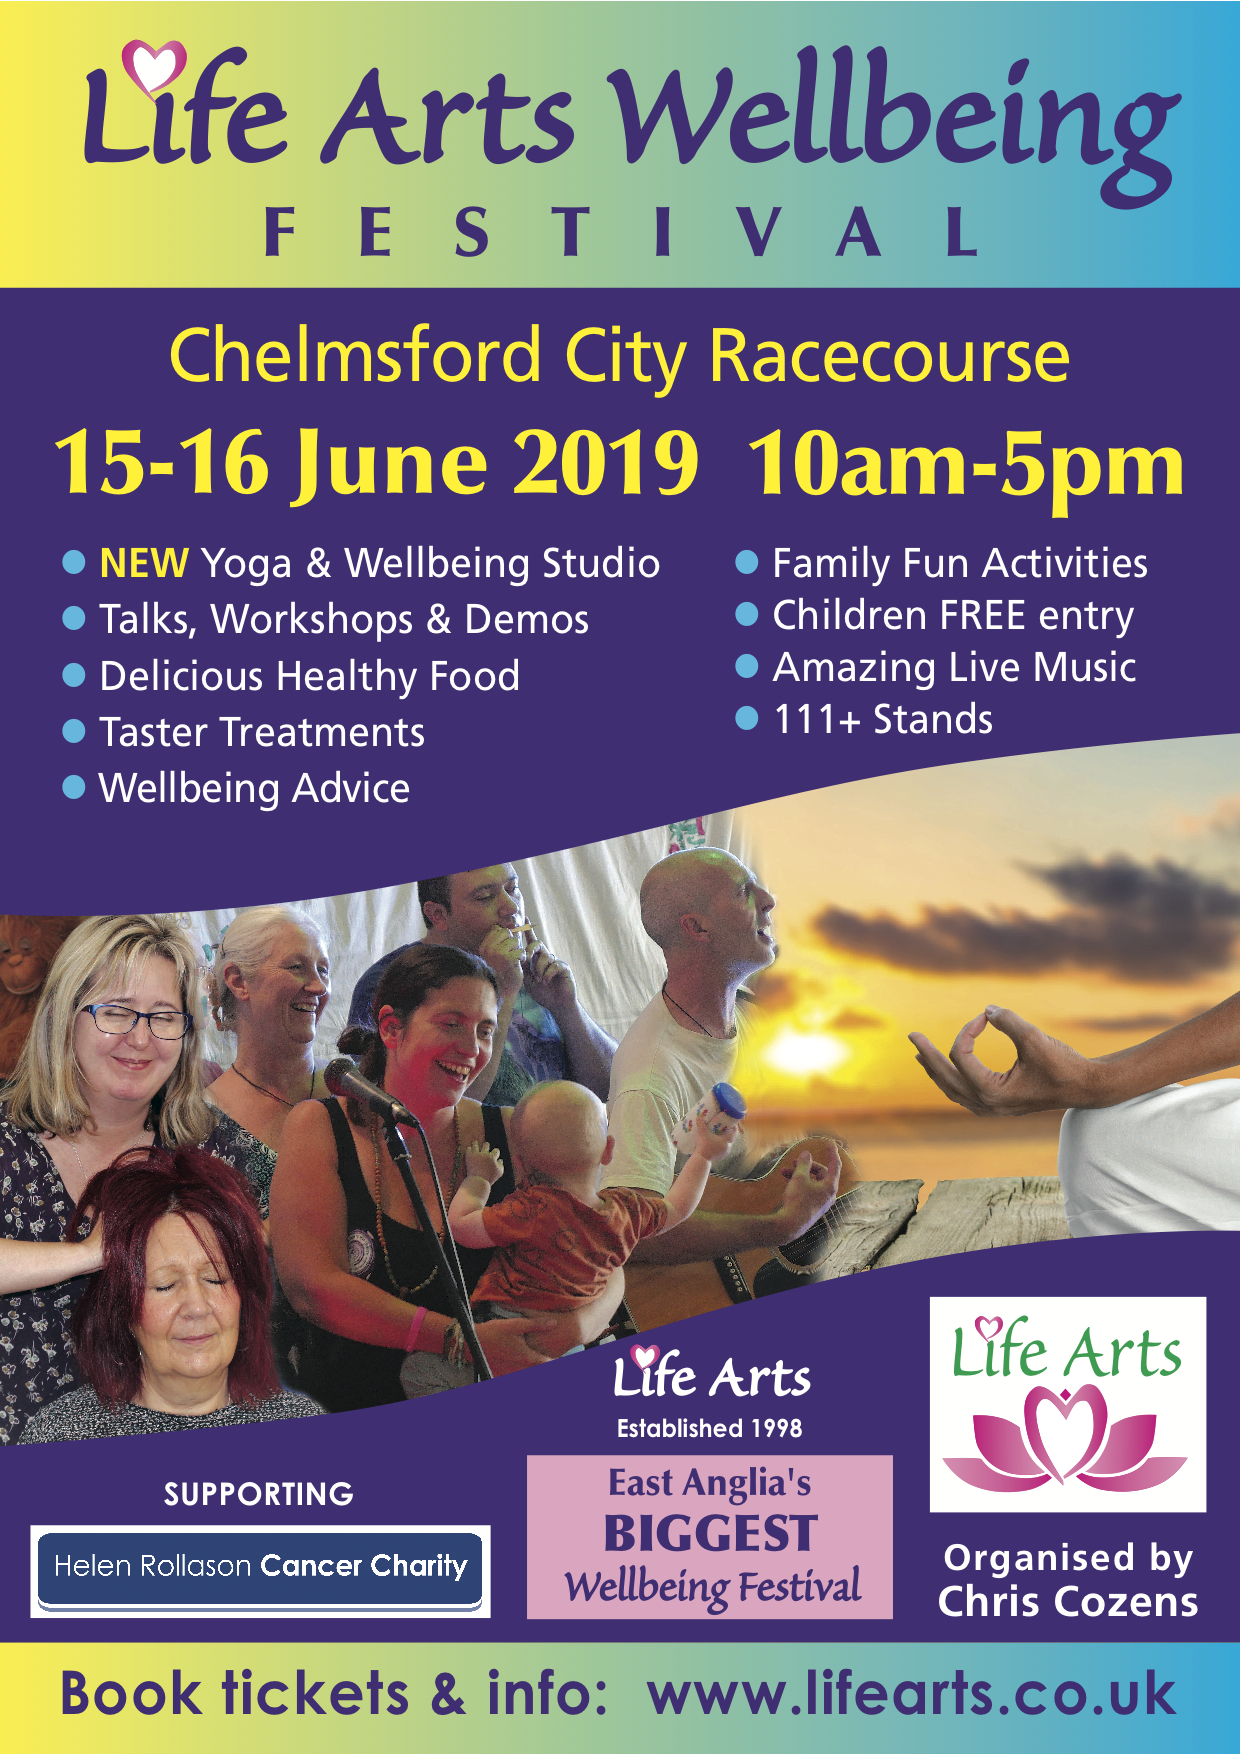 Chelmsford Life Arts Wellbeing Festival 2019